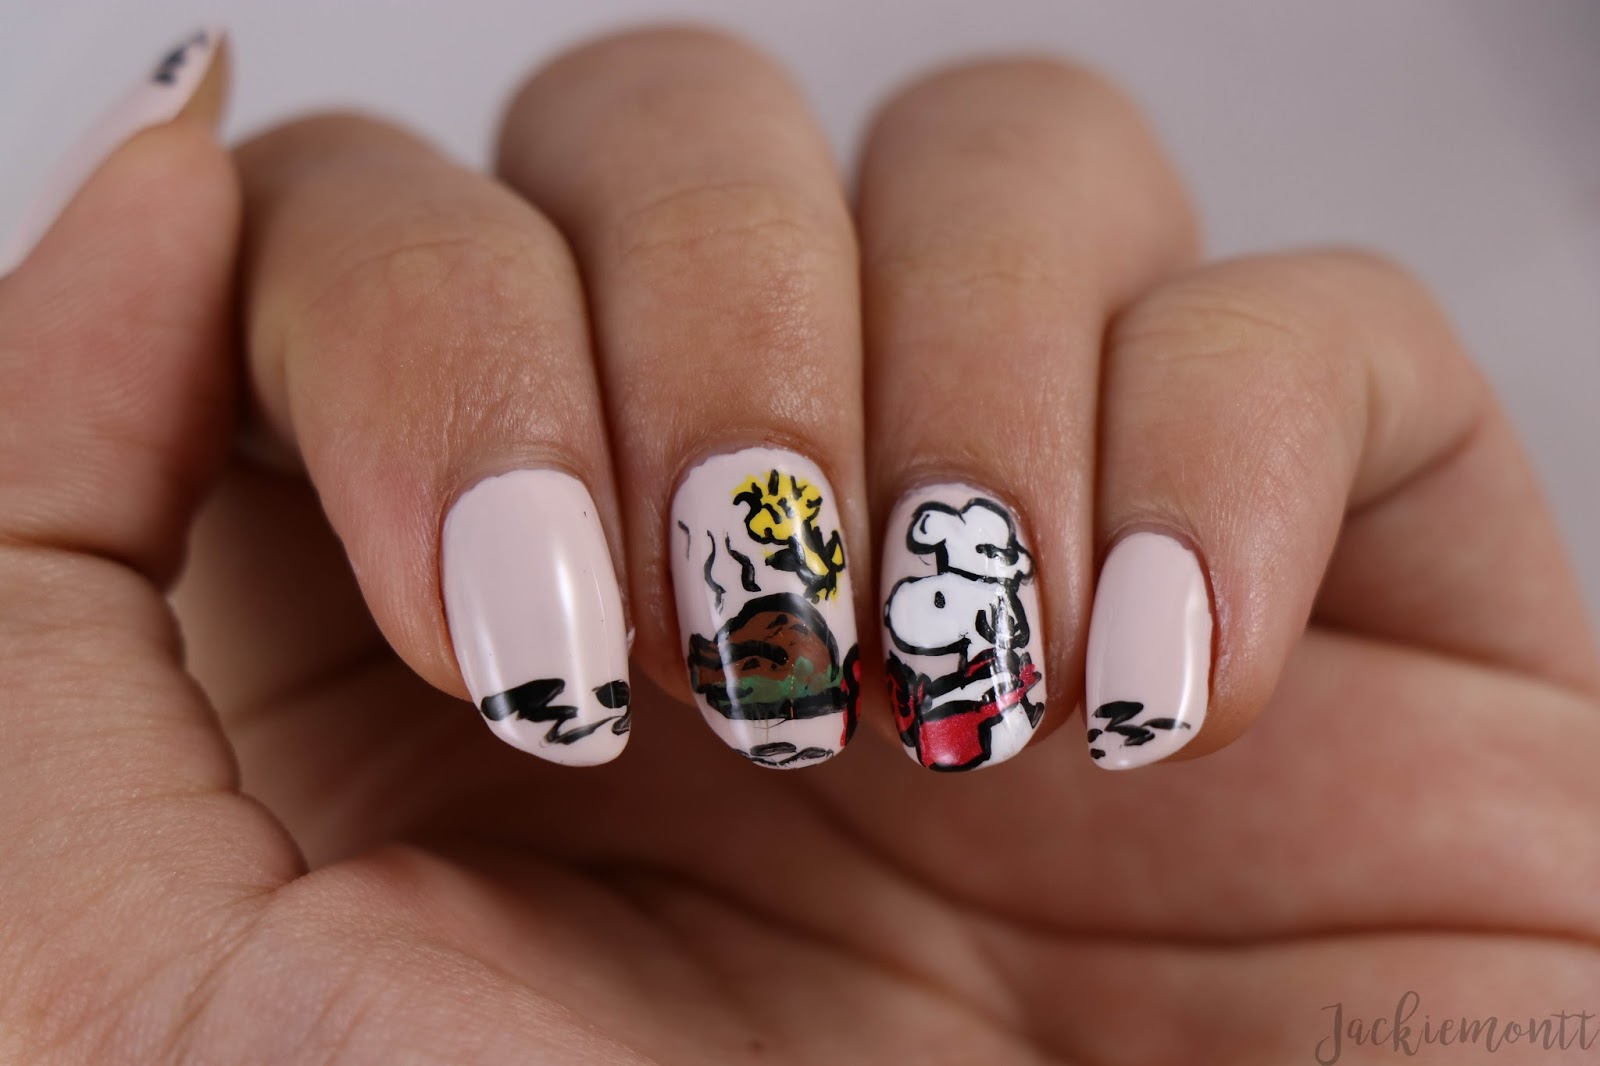 Thanksgiving Nail Art - JACKIEMONTT